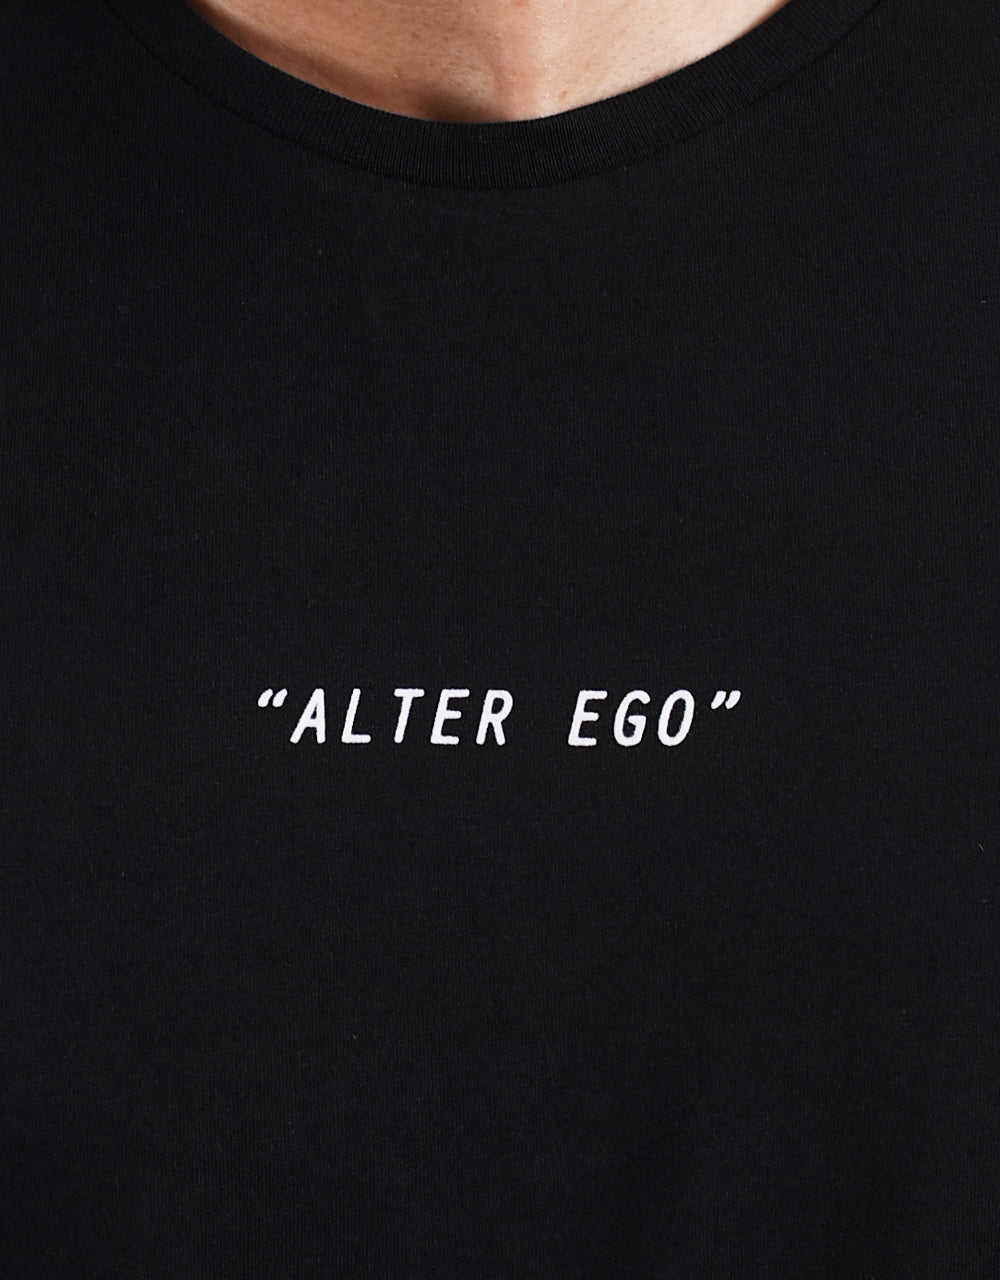 Alter Ego 1 Graphic Tees